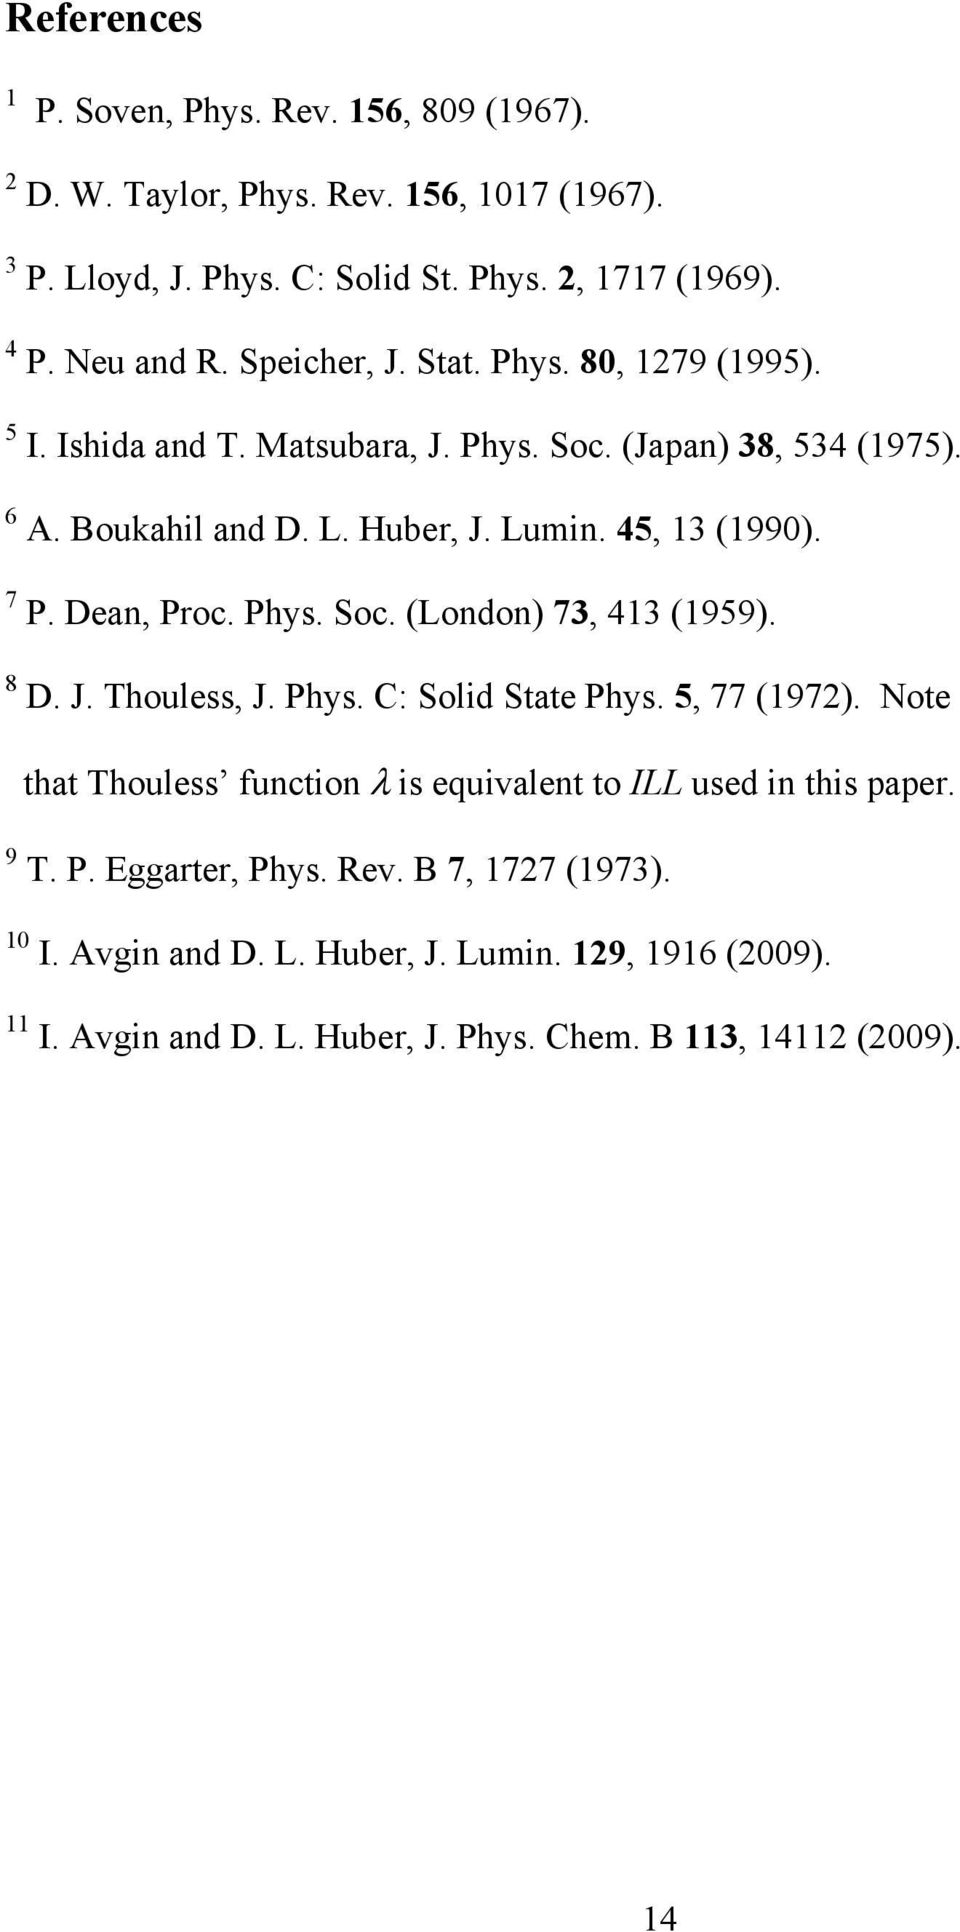 Dean, Proc. Phys. Soc. (London) 73, 413 (1959). 8 D. J. Thouless, J. Phys. C: Solid State Phys. 5, 77 (1972).